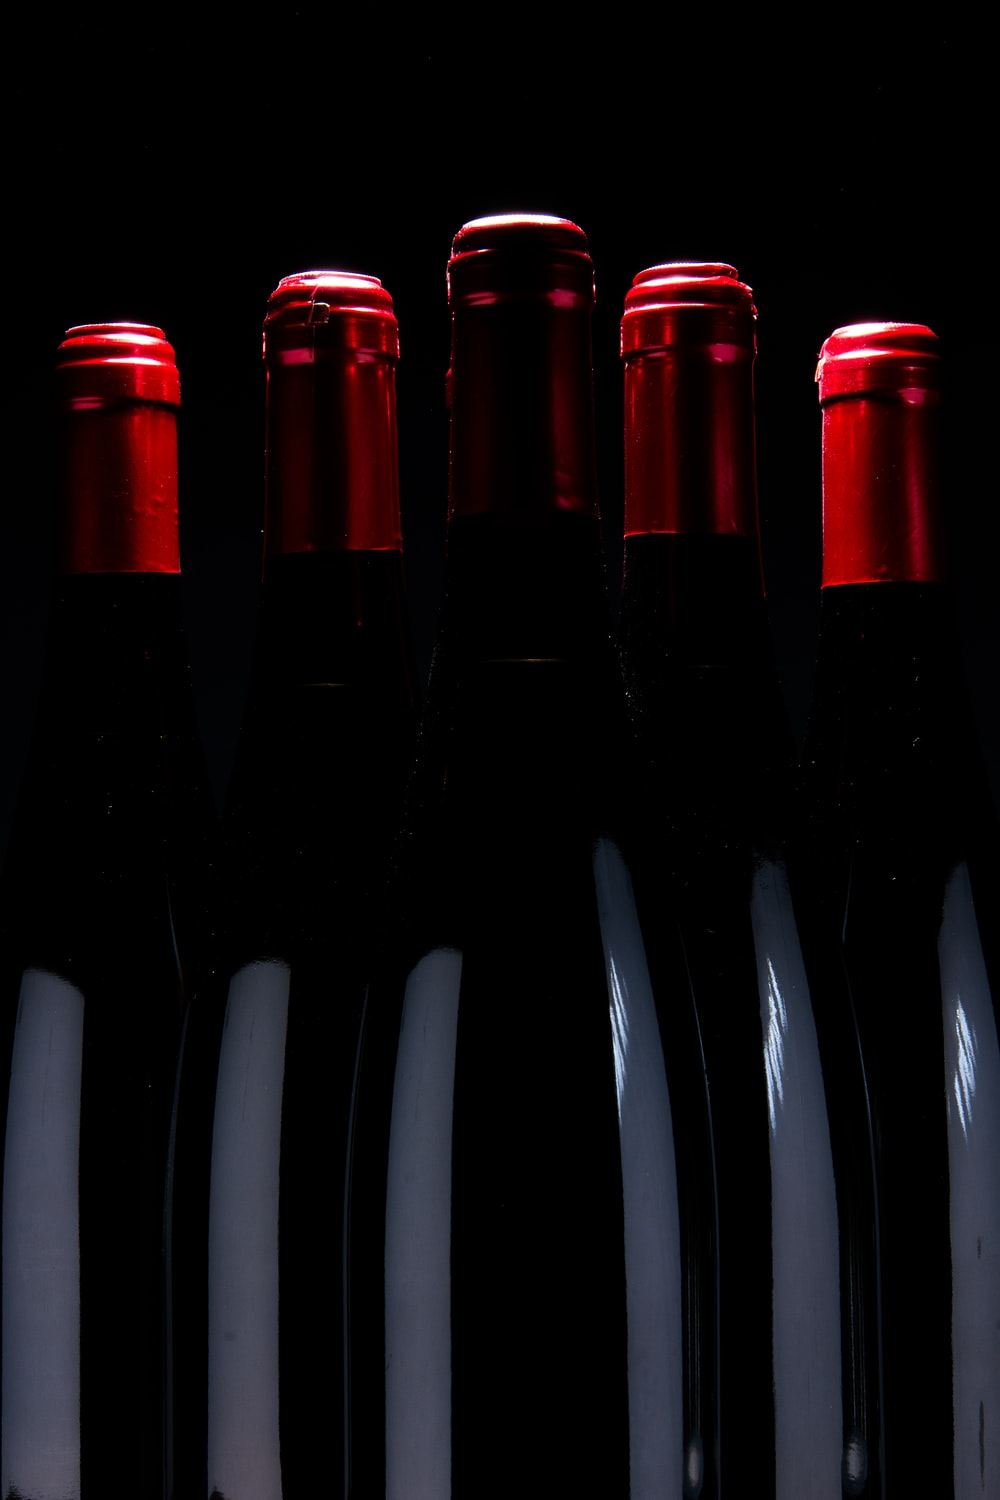 five upright black bottles